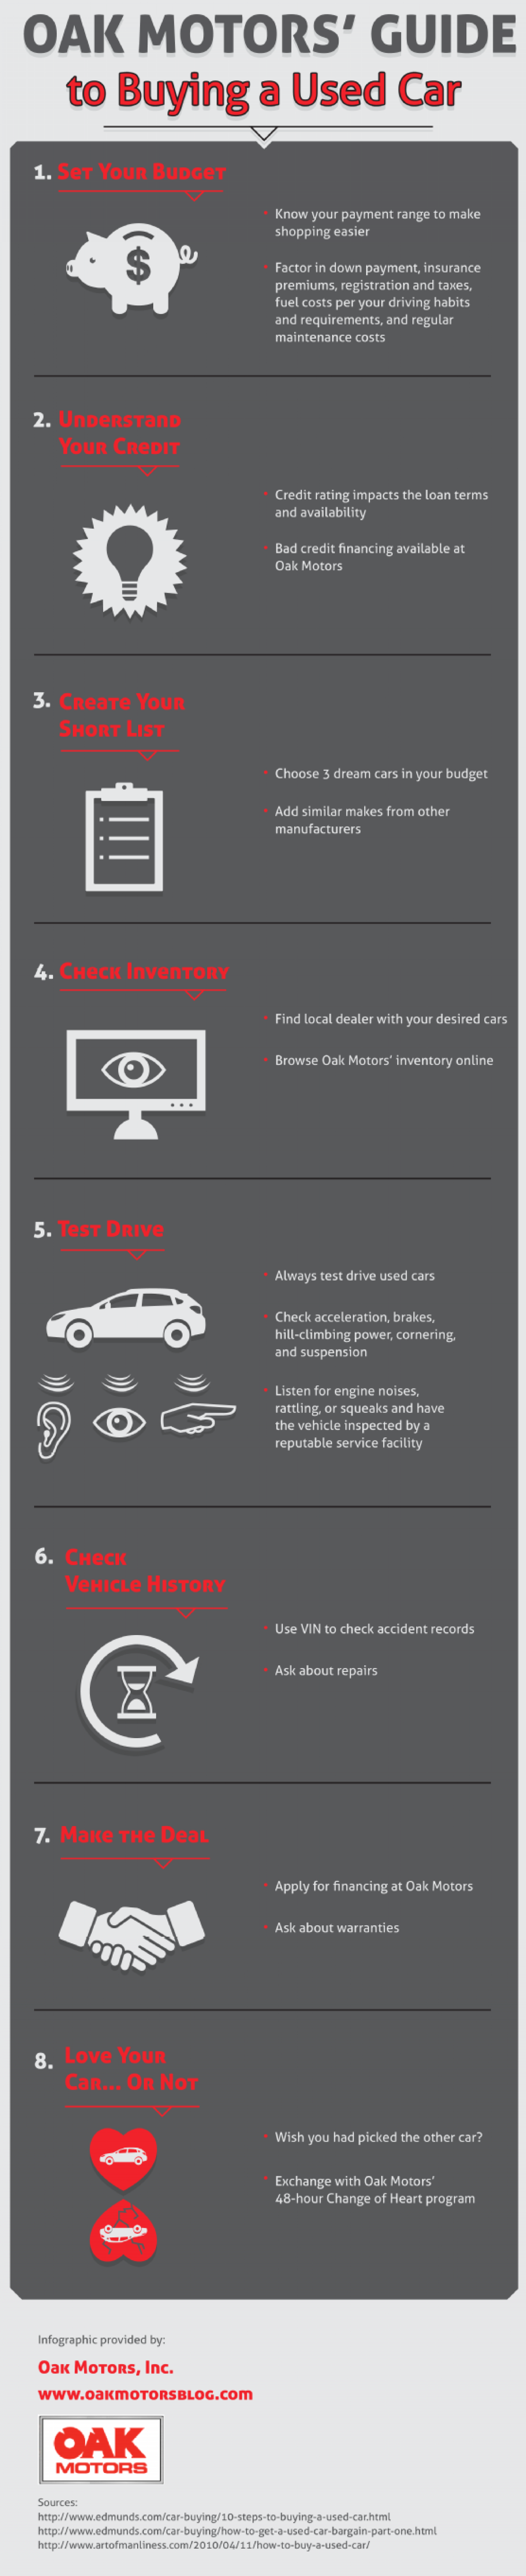 Oak Motors' Guide to Buying a Used Car Infographic